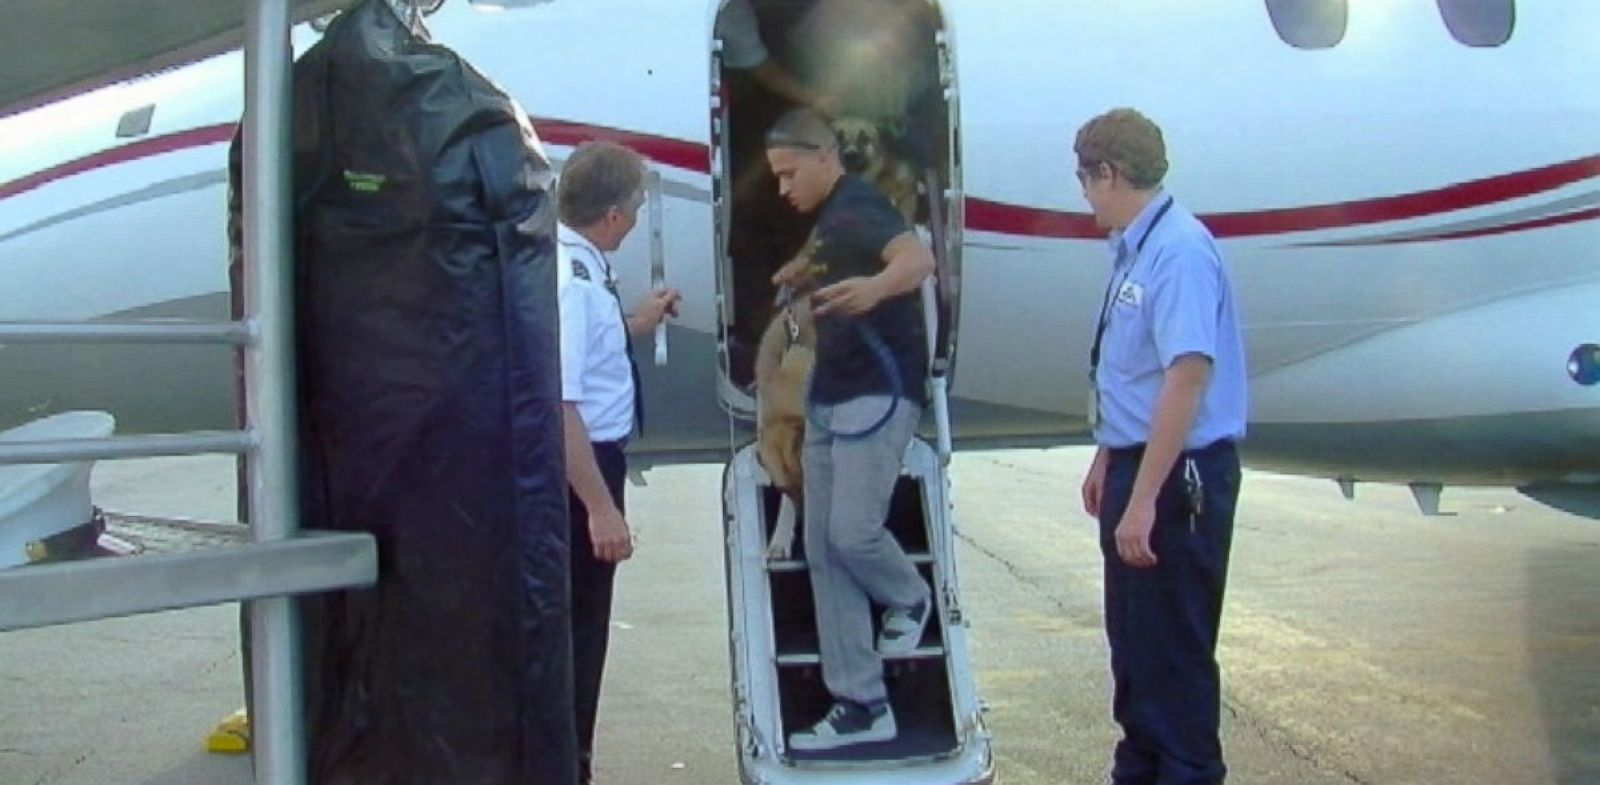 PHOTO: Andrew Morales, with Dusty and Wyatt, step off the chartered plane.